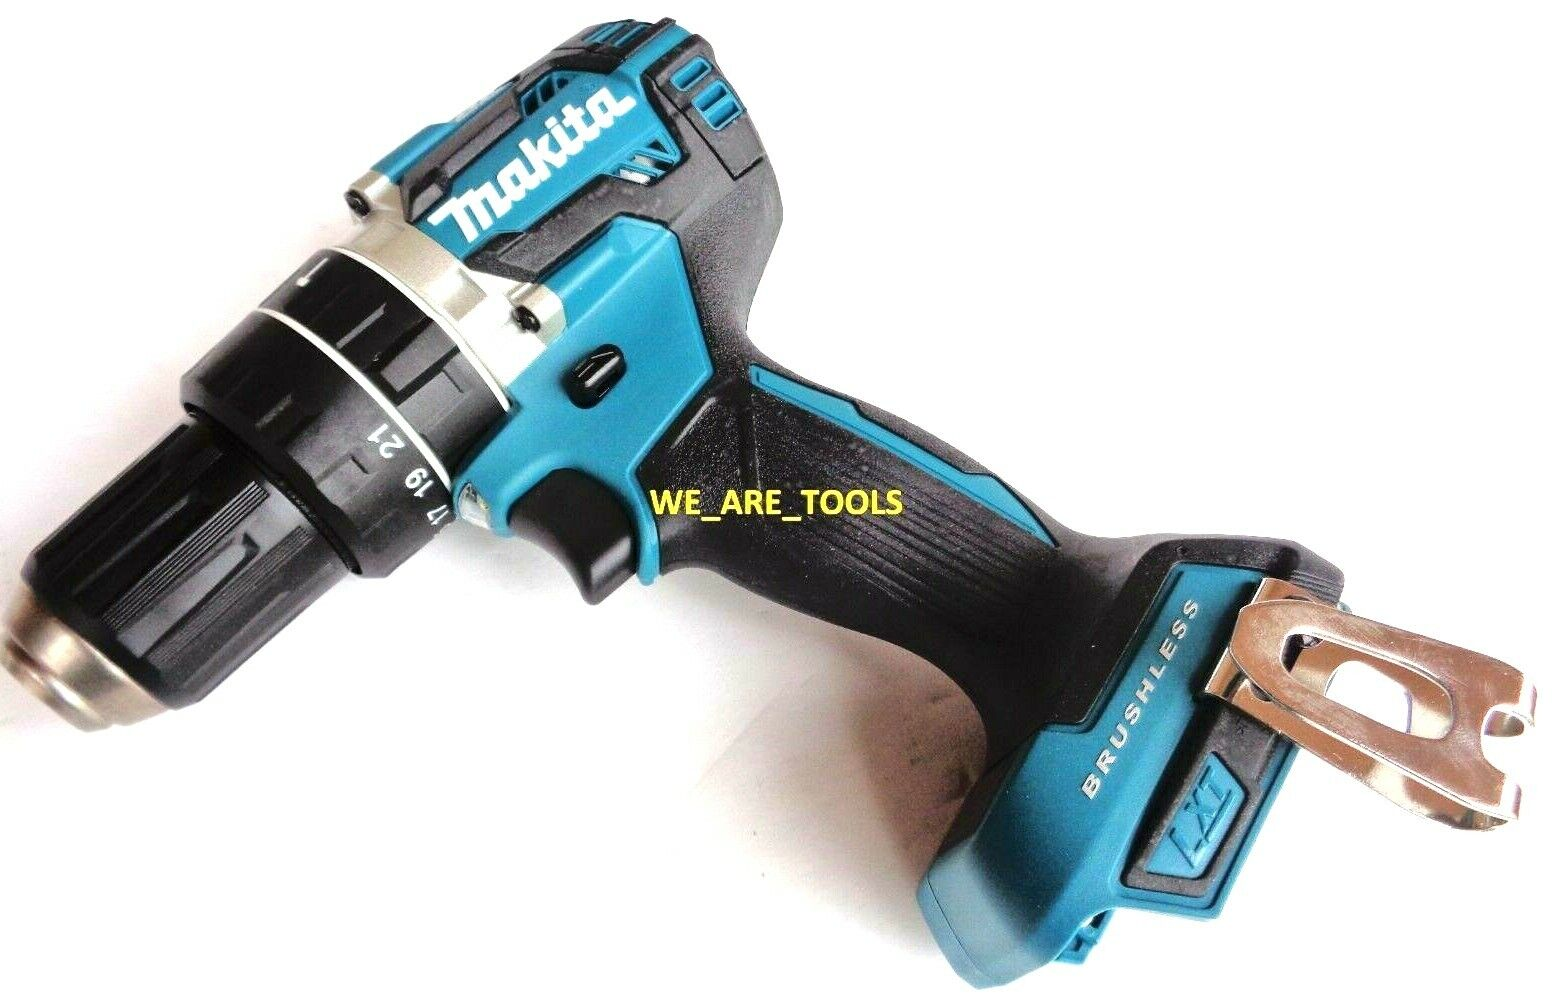 XPH12 we_are_tools New Makita 18V XPH12 Cordless Brushless 1/2 Battery Hammer Drill 18 Volt LXT